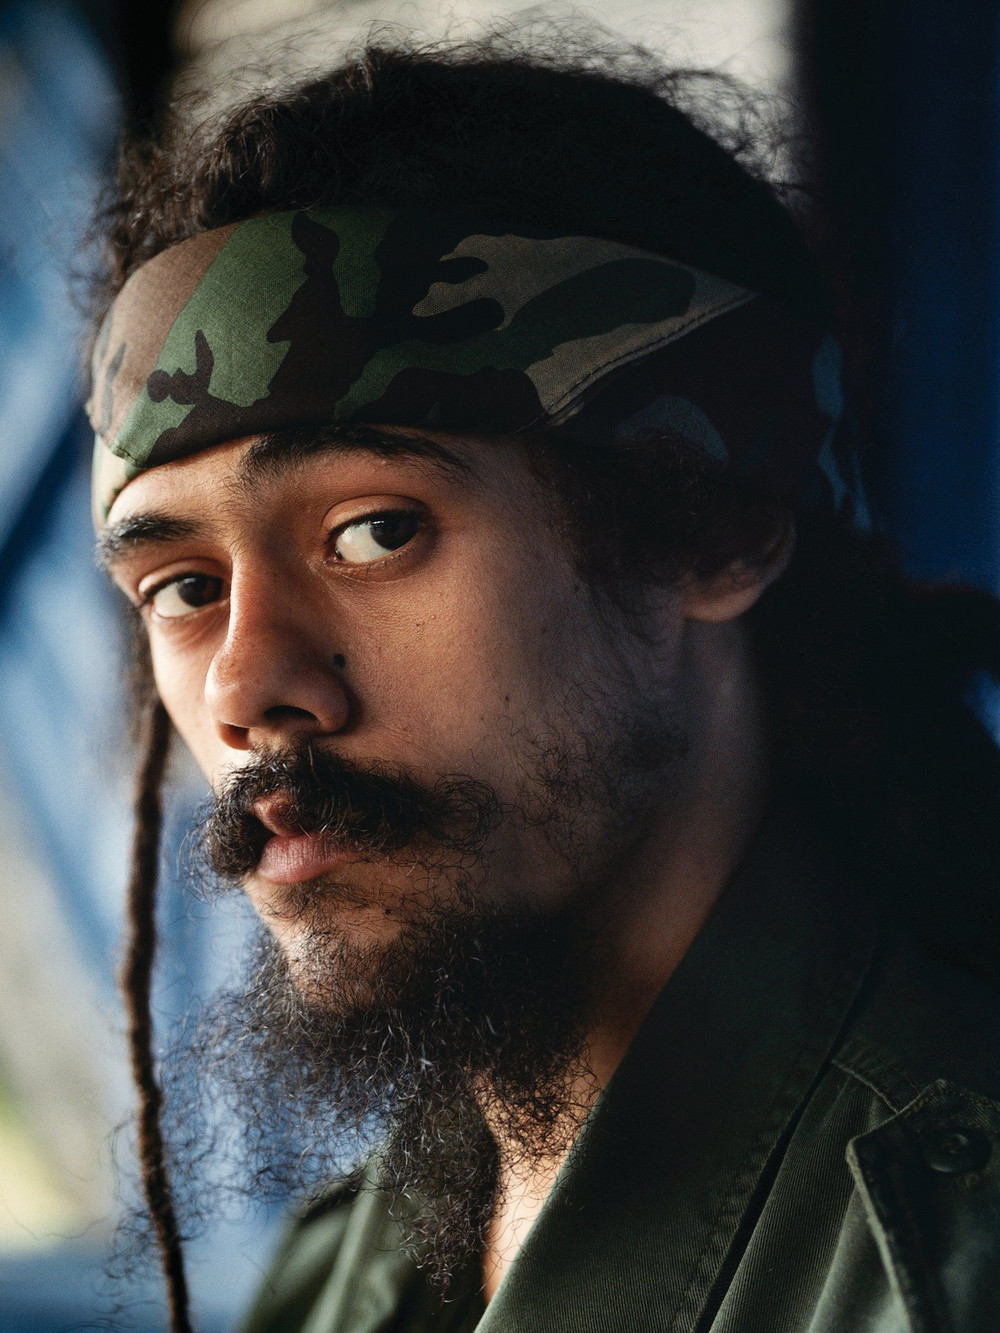 Damian marley on spotify thecheapjerseys Gallery